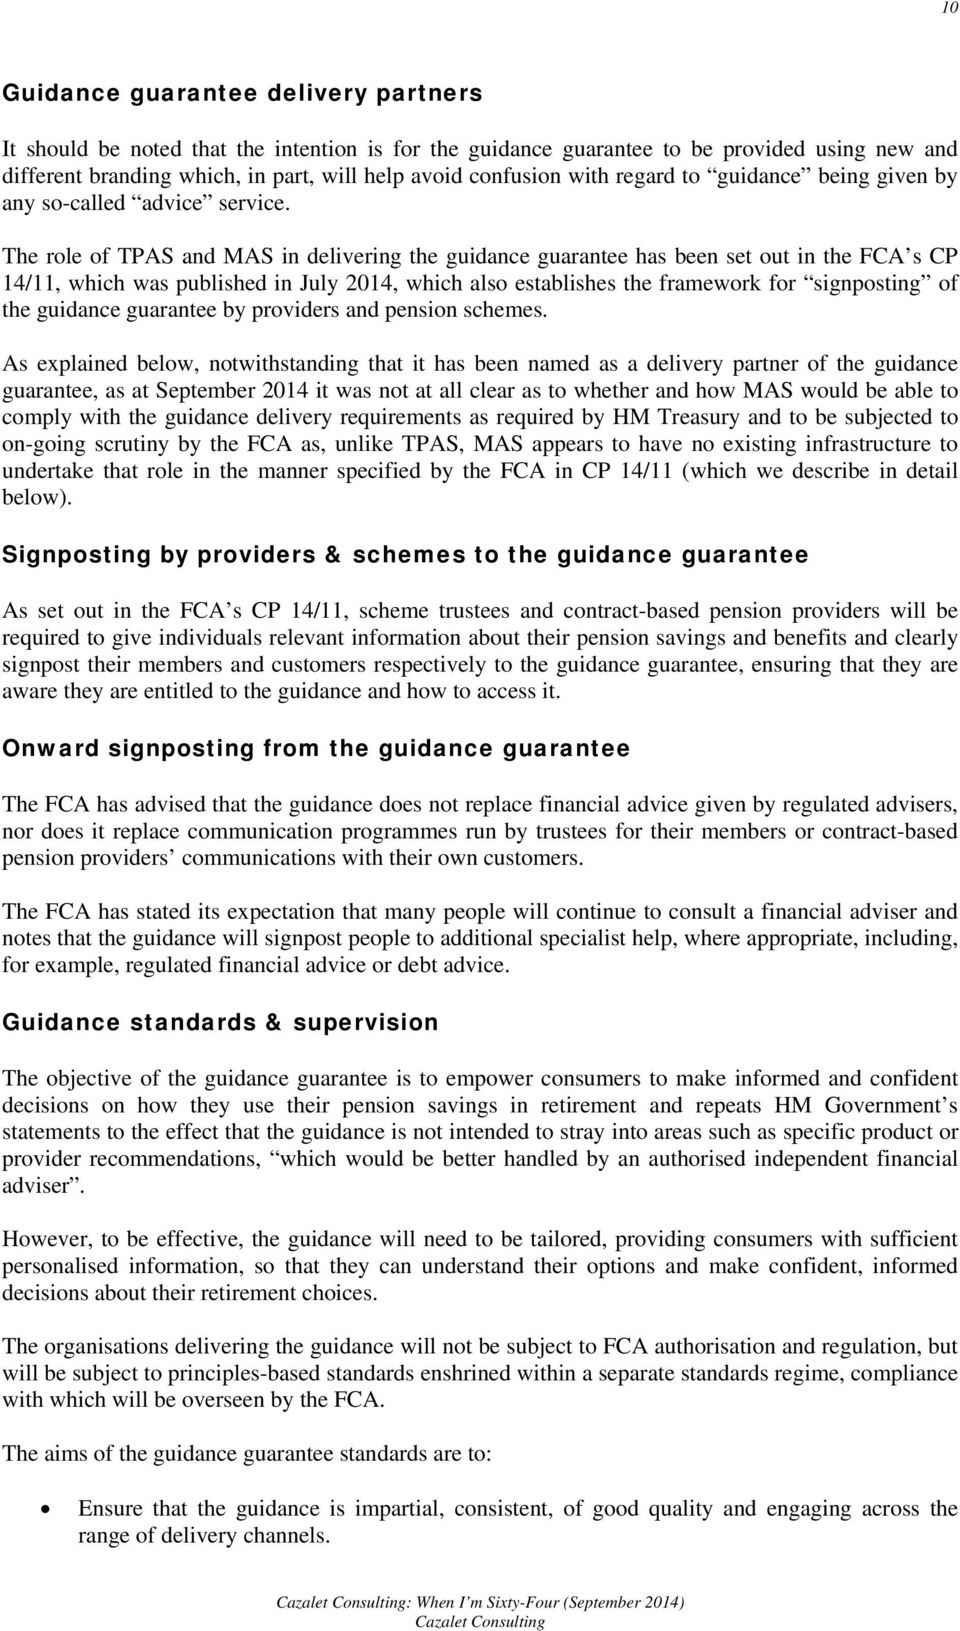 The role of TPAS and MAS in delivering the guidance guarantee has been set out in the FCA s CP 14/11, which was published in July 2014, which also establishes the framework for signposting of the